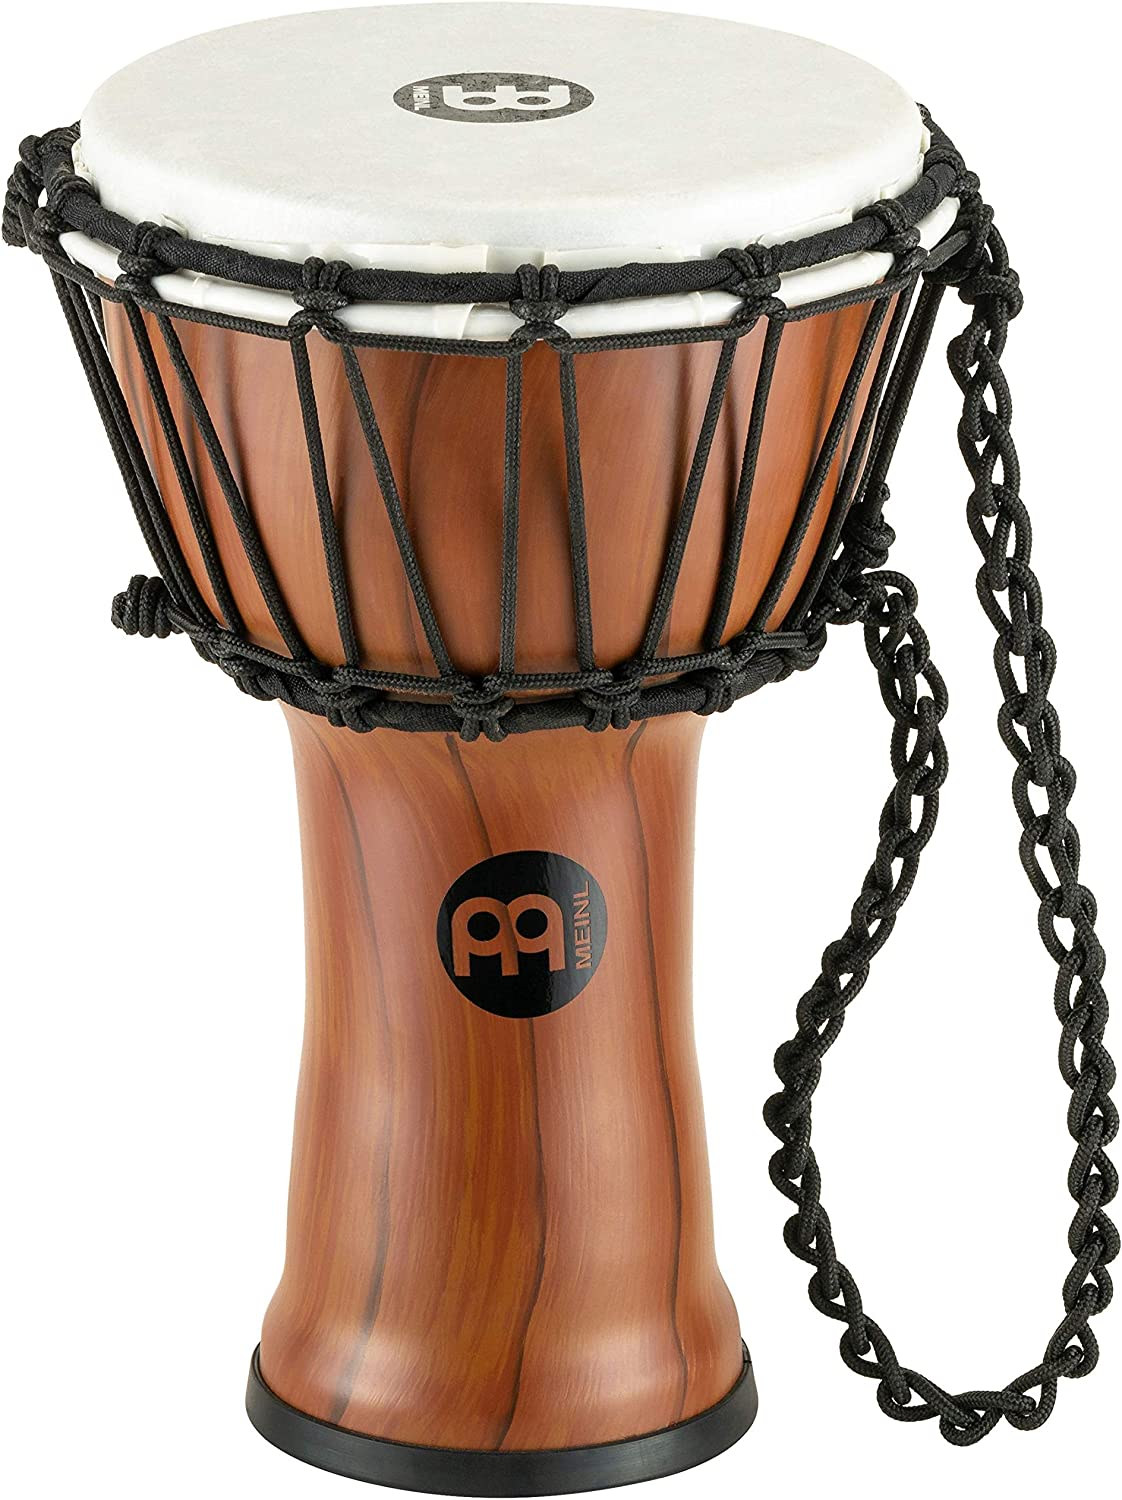 Meinl Percussion Junior Djembe with Fixed price for sale and Head-NOT Synthetic Shell Nippon regular agency